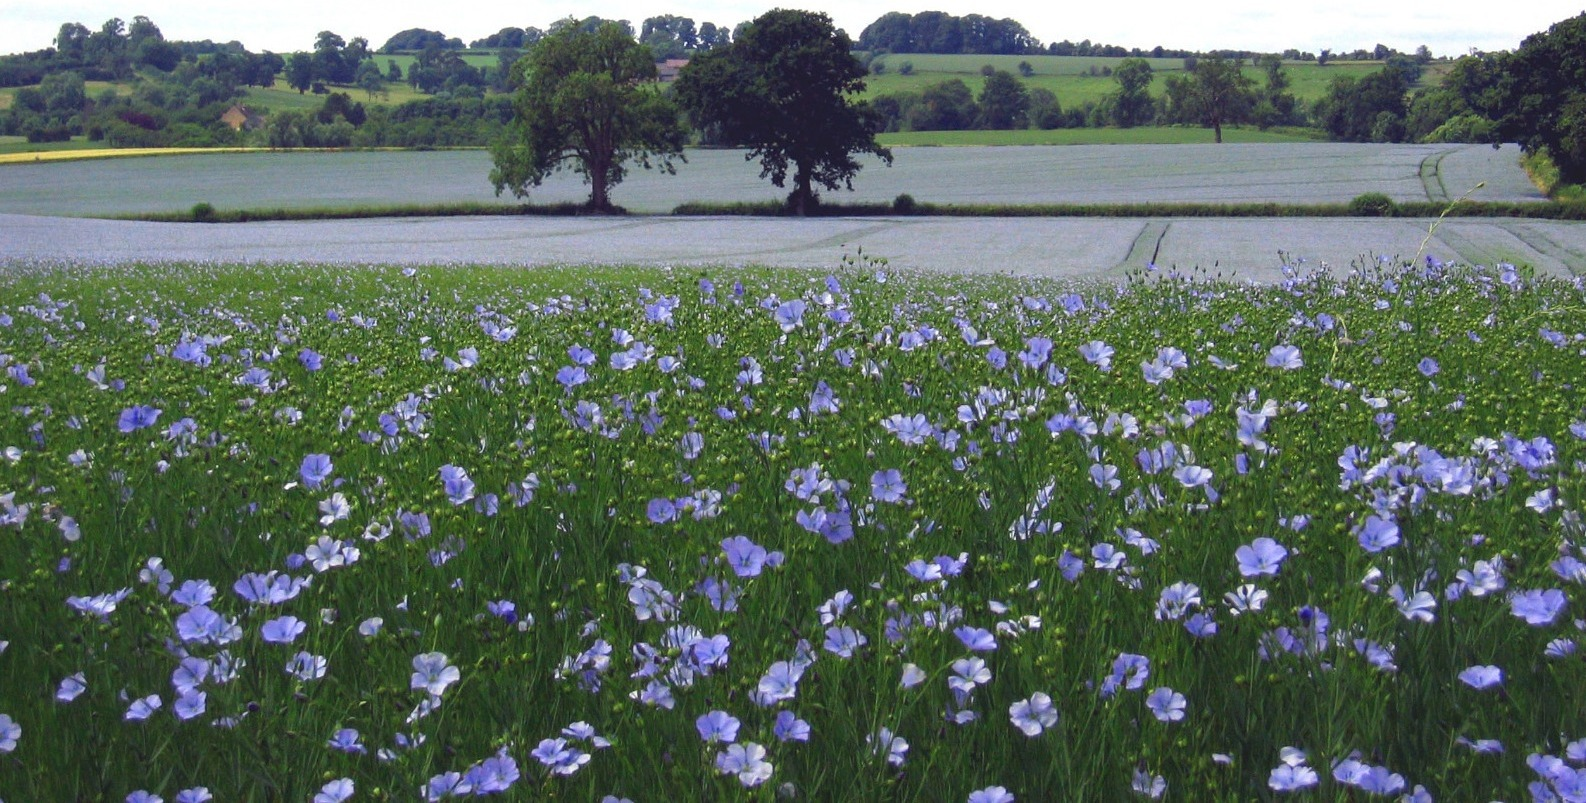 Linseed in bloom in the UK